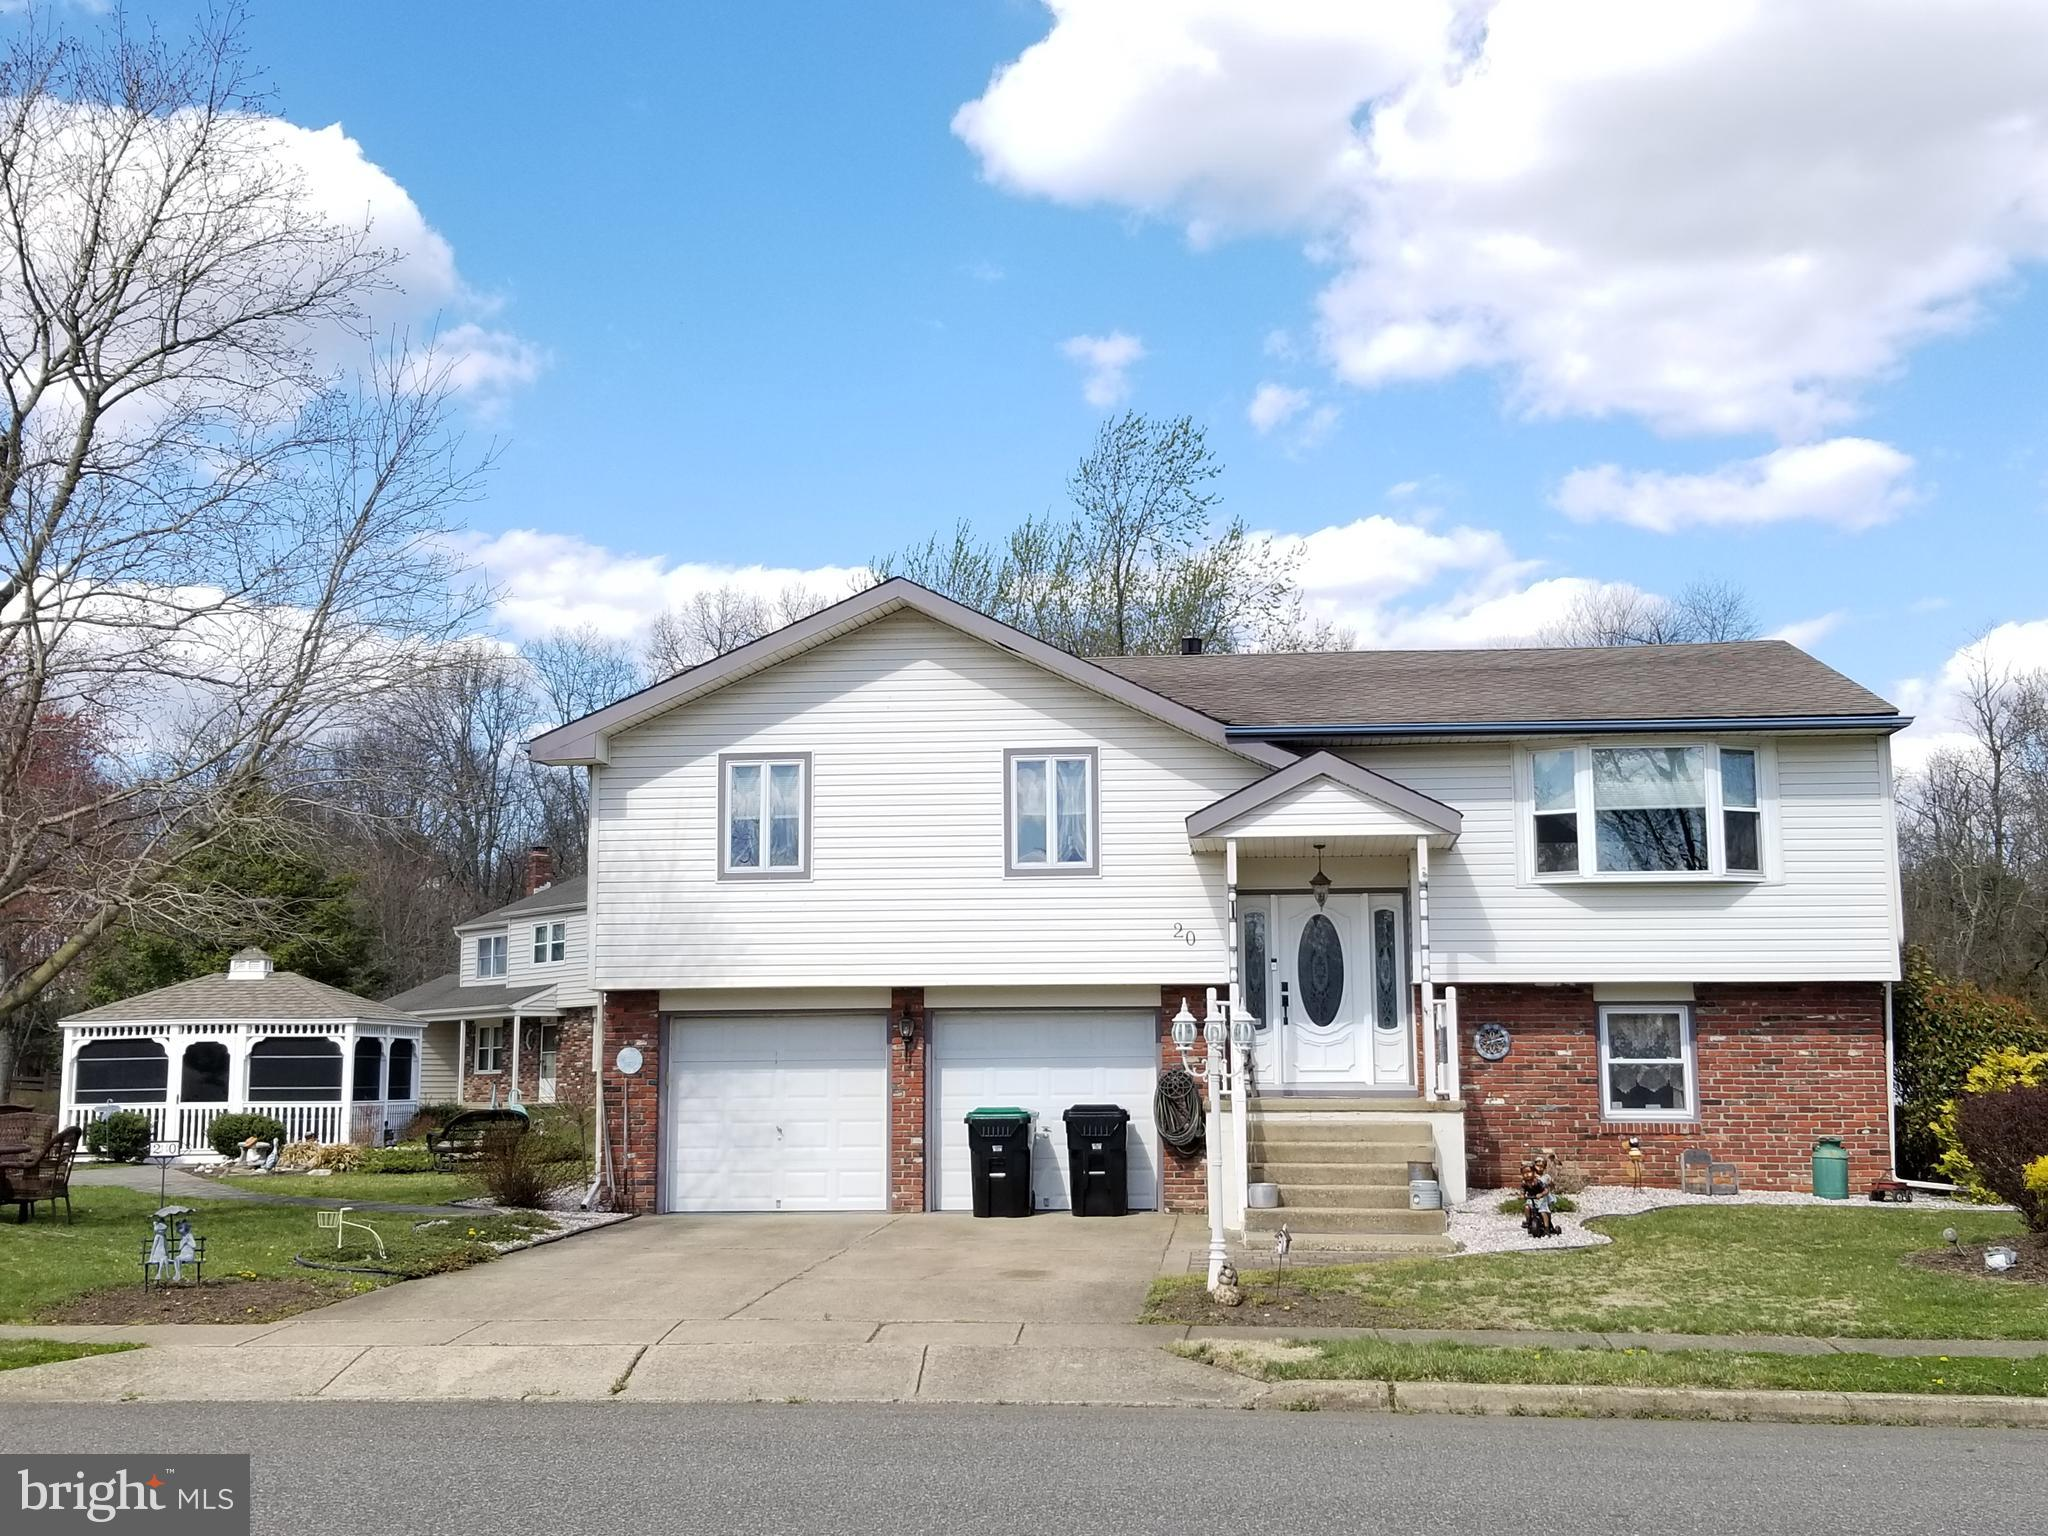 20 LAKEVIEW DRIVE, WATERFORD WORKS, NJ 08089